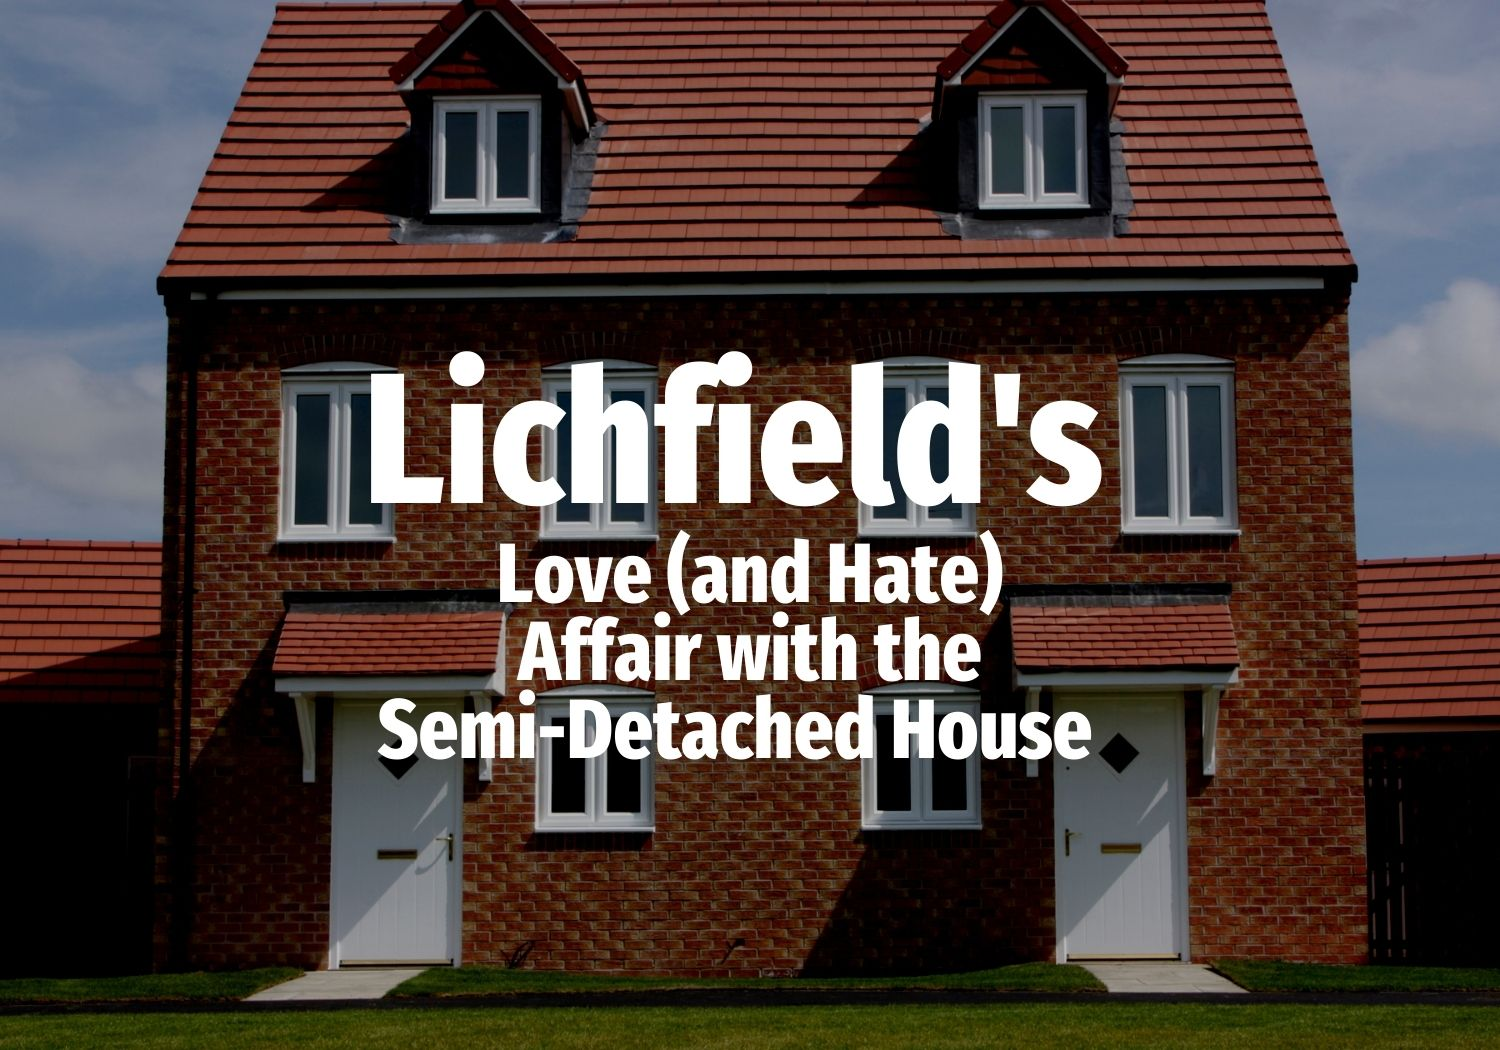 lichfield-property-news-barrows-forrester-estate-letting-agent-2